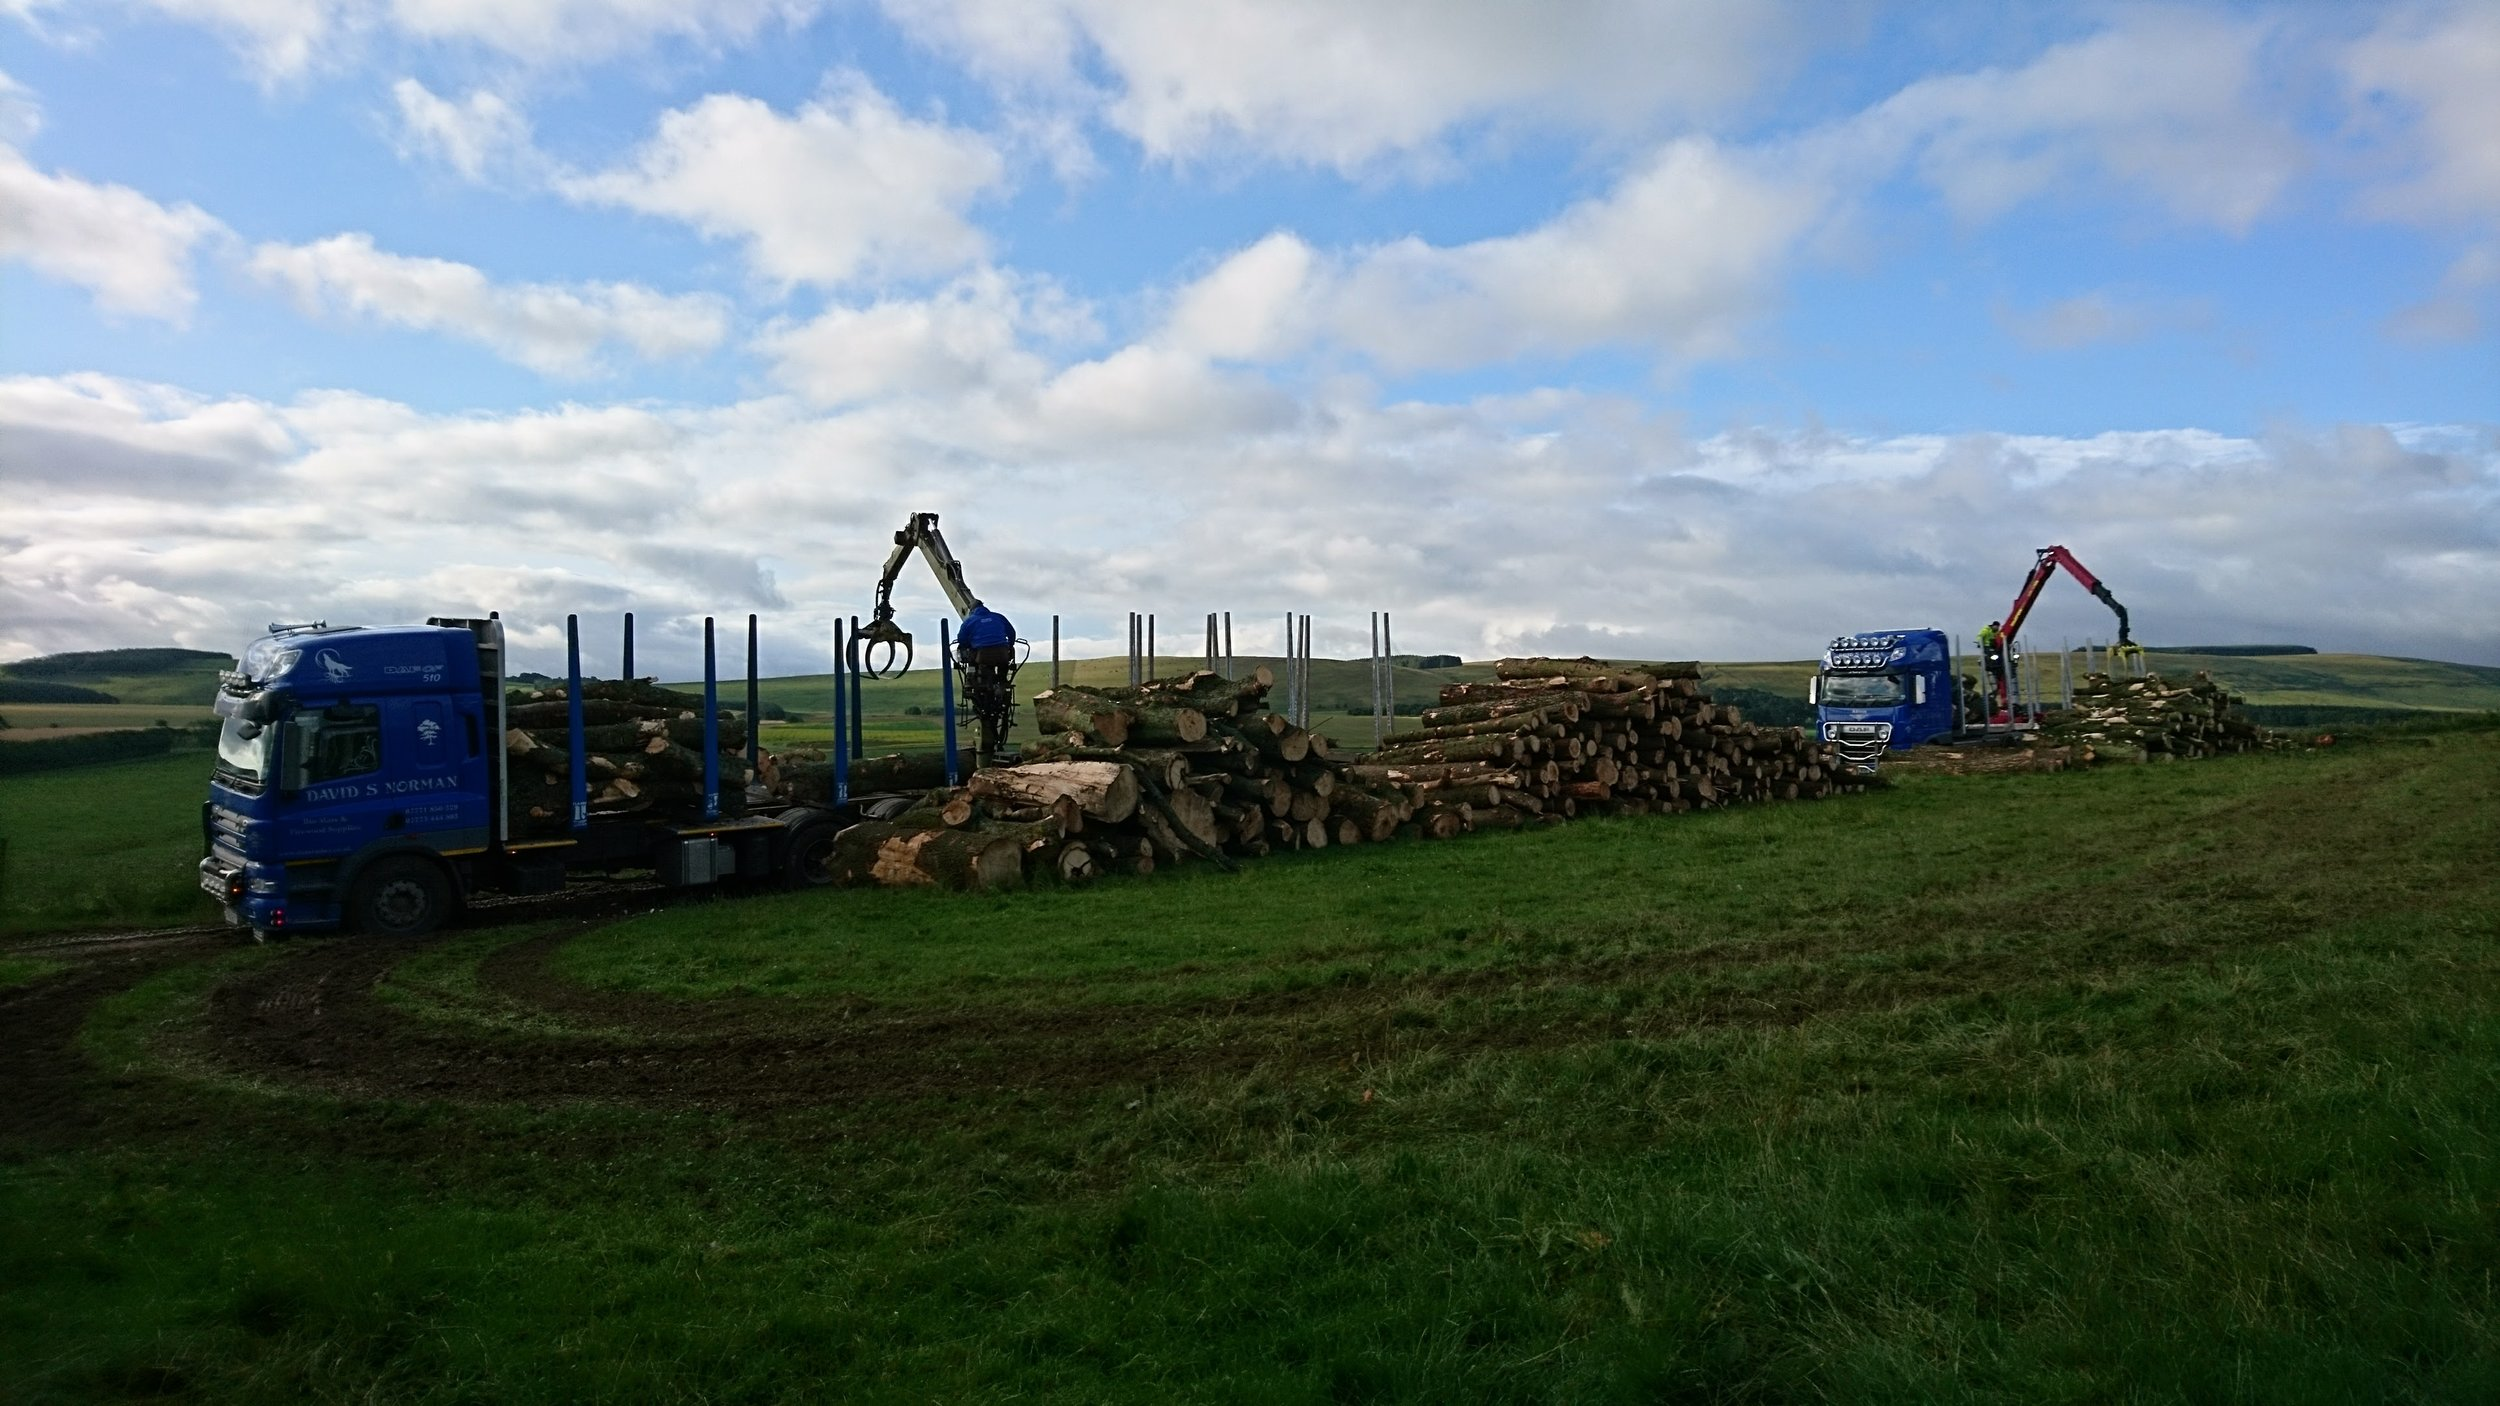 TIMBER UPLIFT BY TWO WAGON & DRAG UNITS